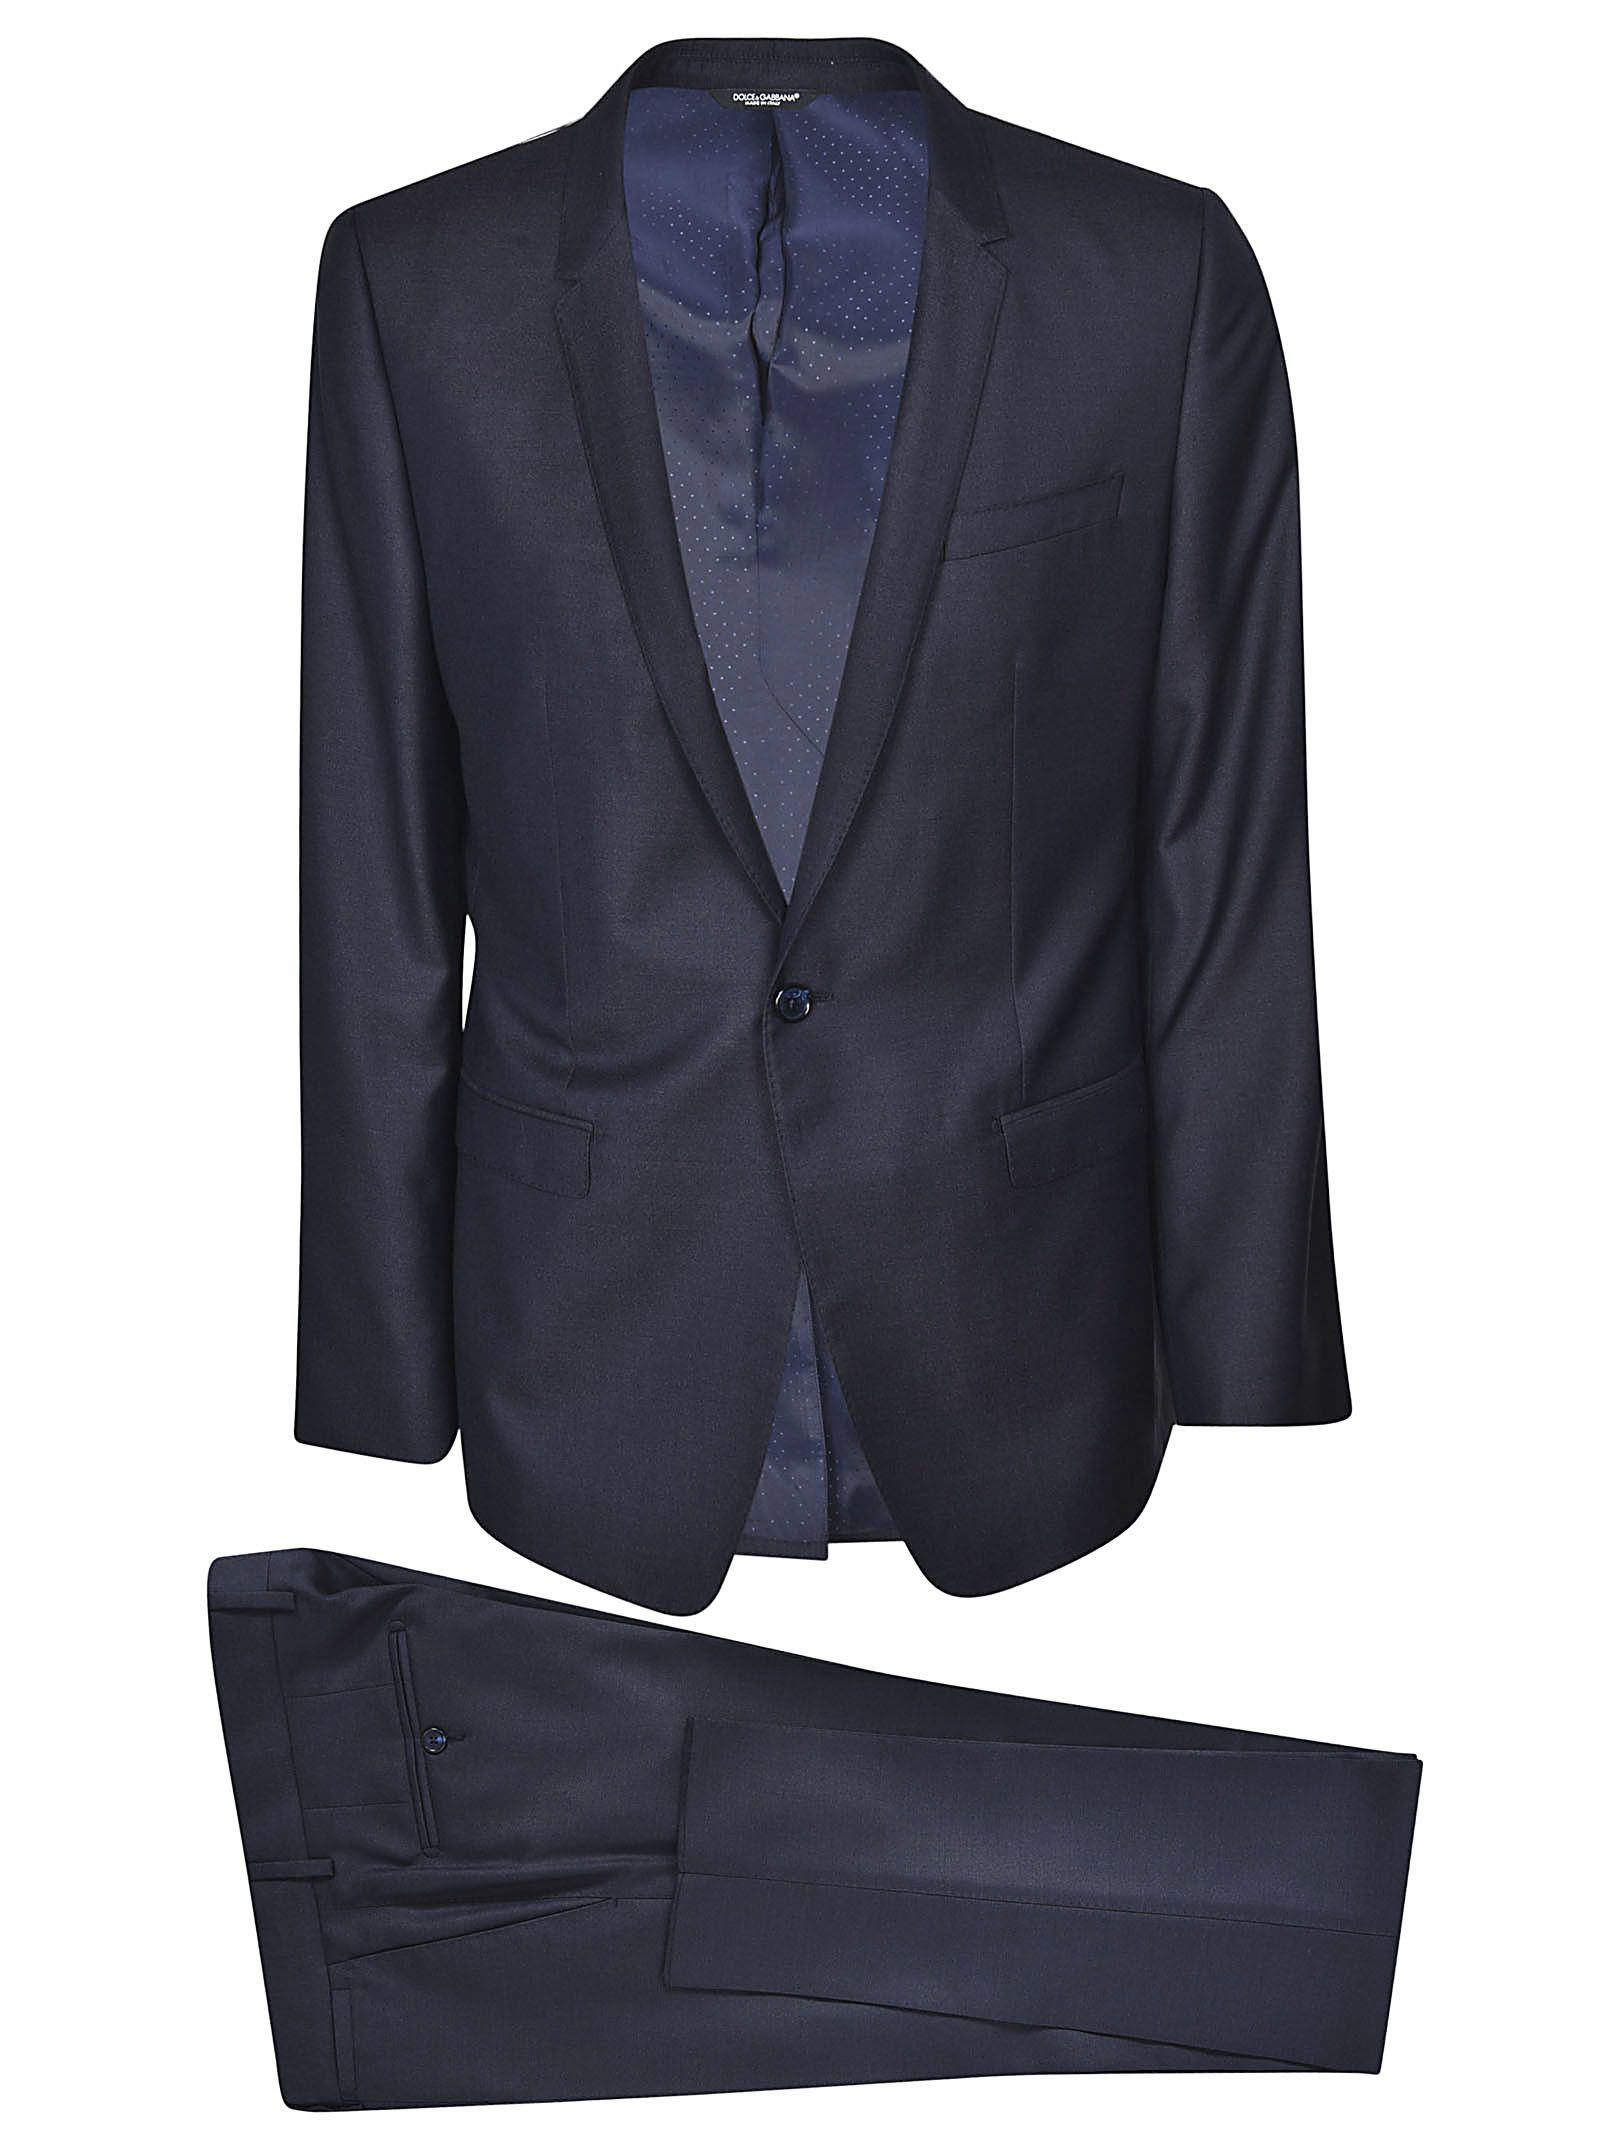 DOLCE & GABBANA SINGLE BREASTED SUIT